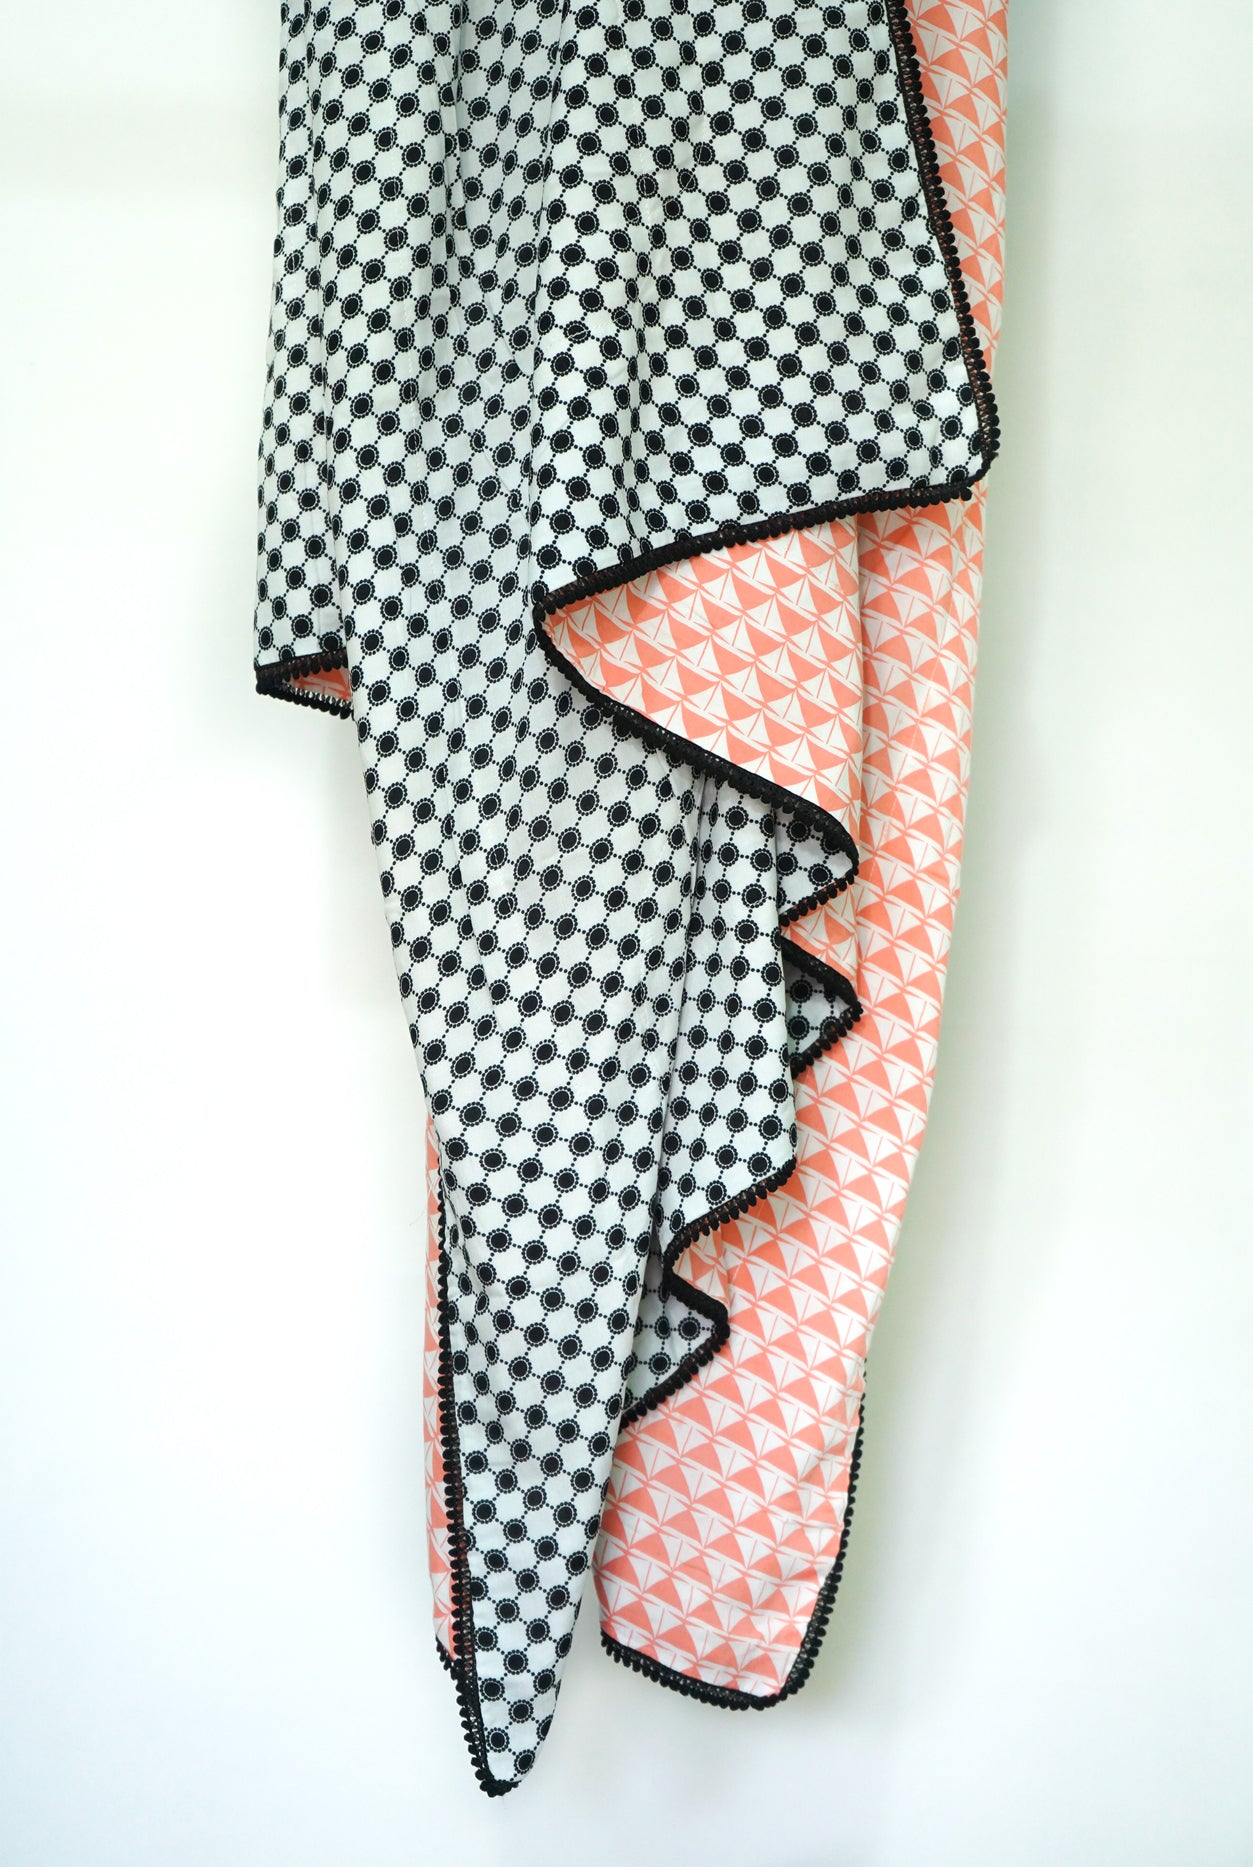 Blanket: White and Black dot and peach - KNOW INDO